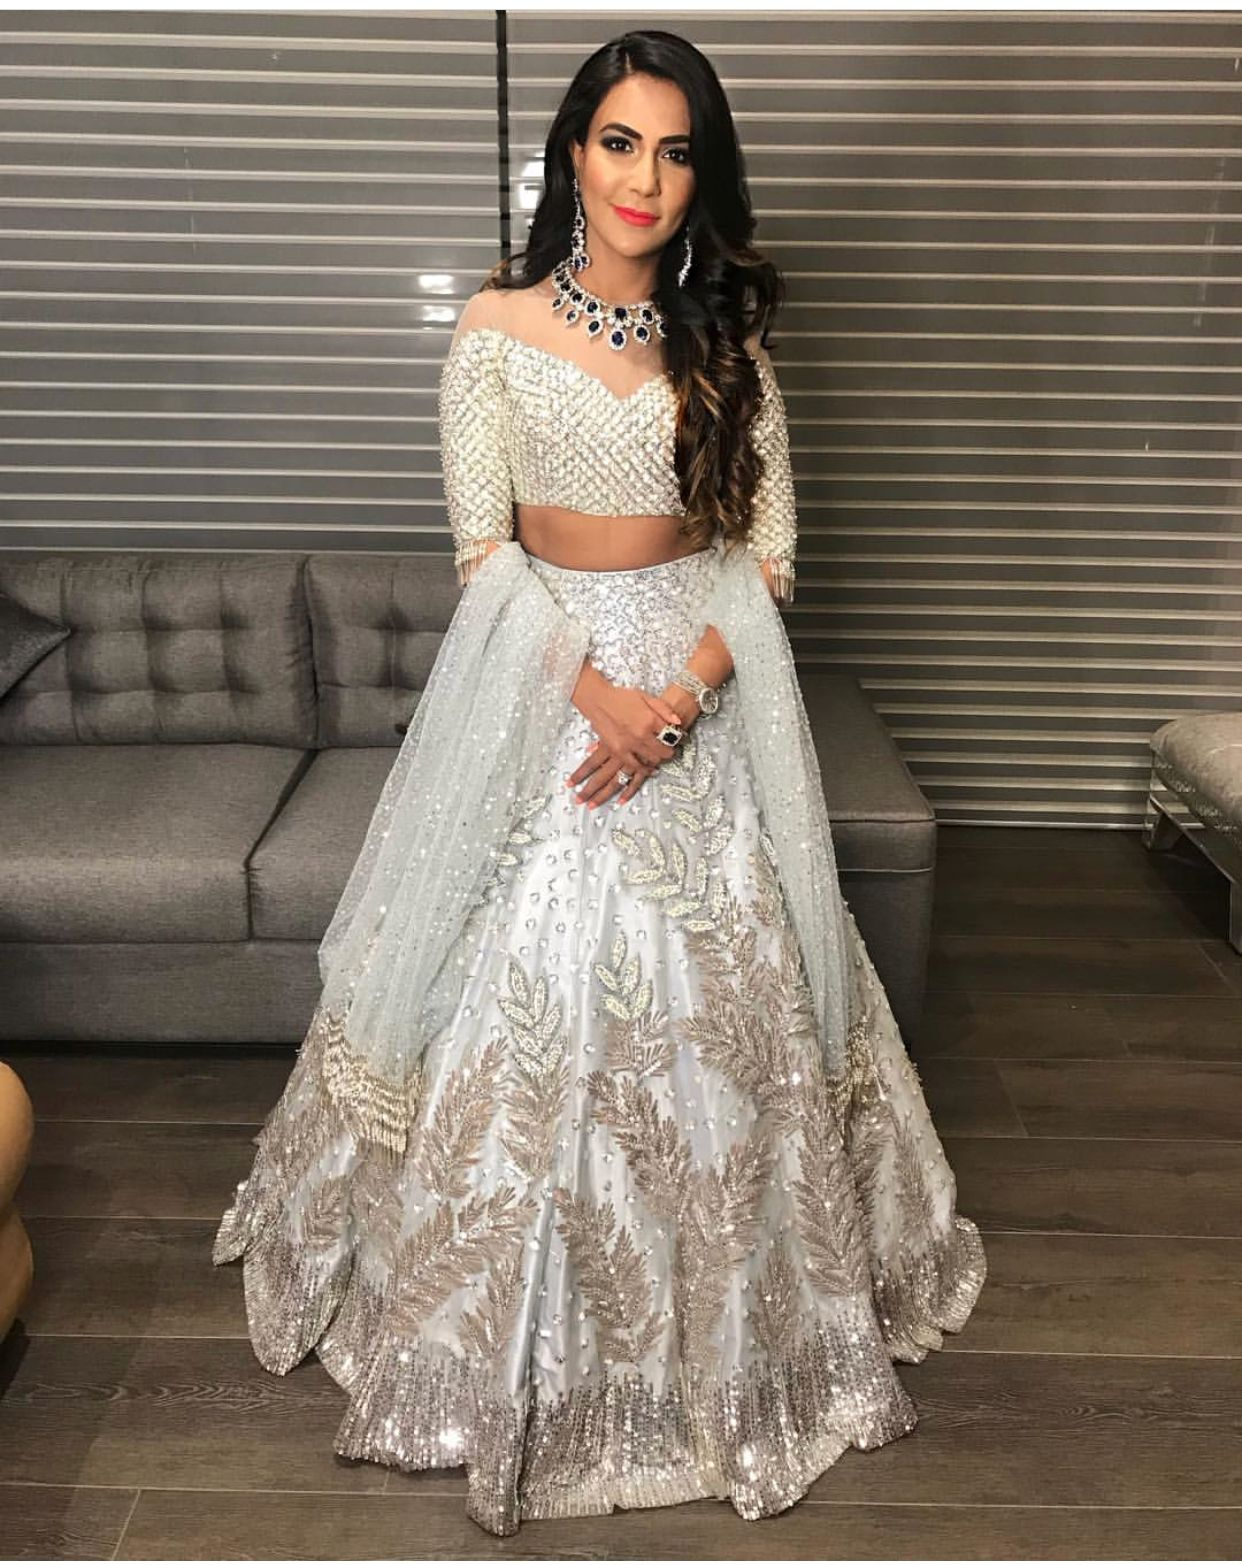 manish malhotra dresses lehenga indian reception pakistani outfit blouse designs gowns outfits